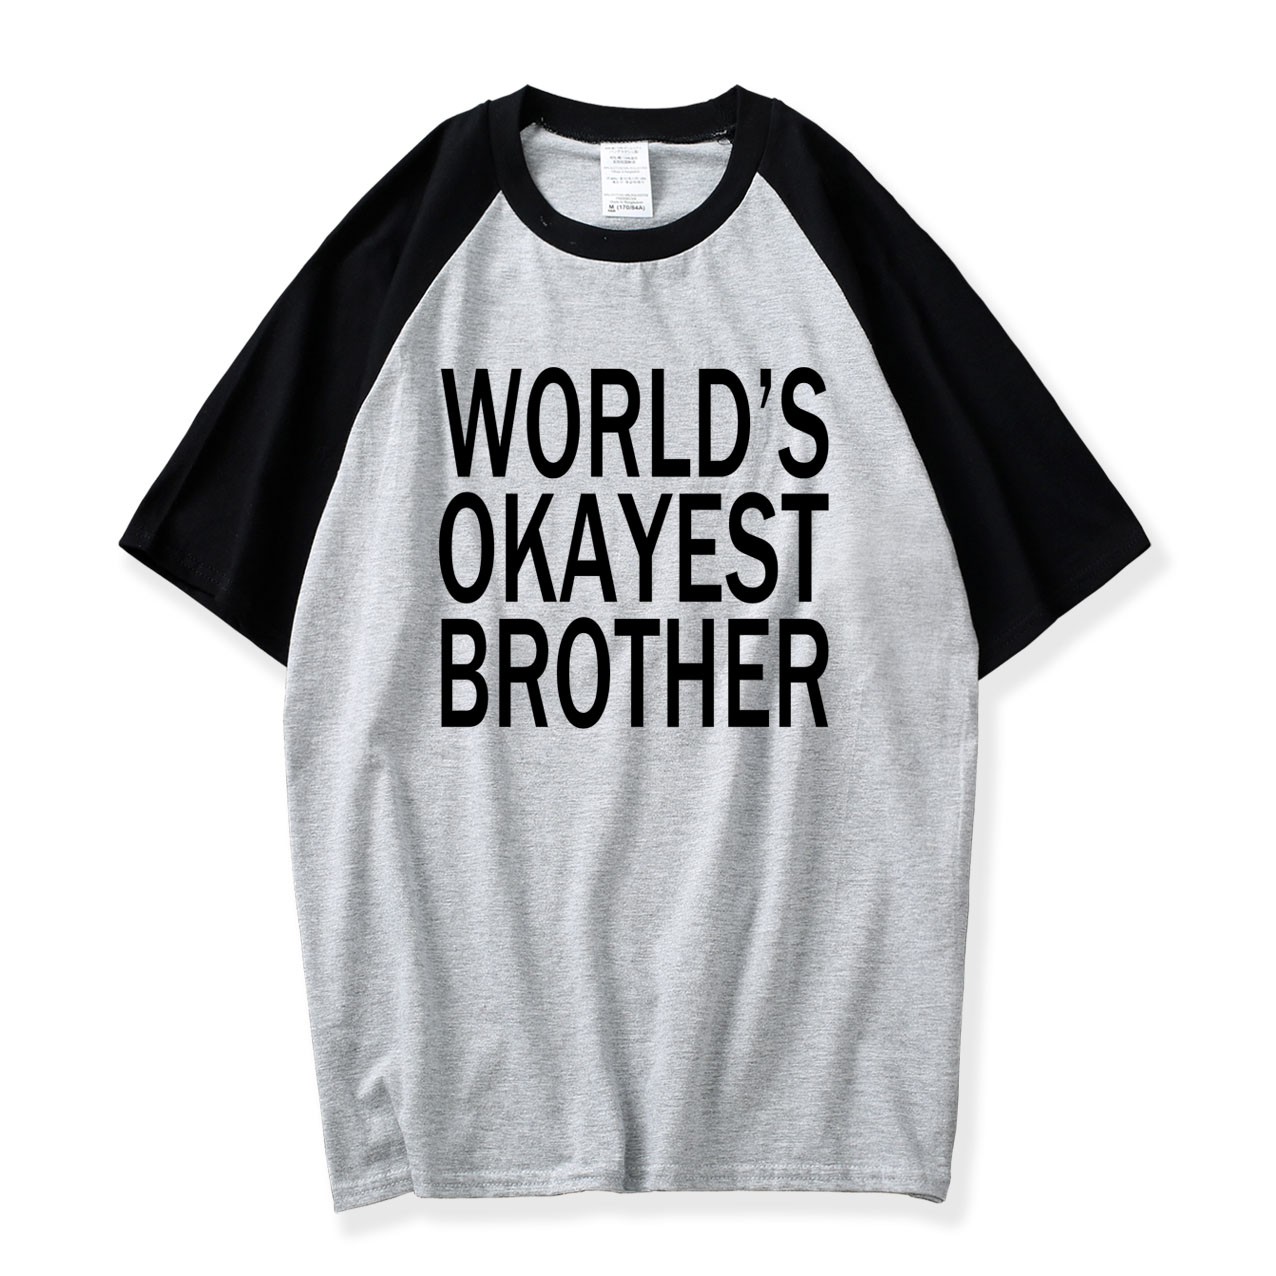 Raglan Tshirt Mens Worlds Okayest Brother Shirt Funny T Shirts Big Brother Sister Gift Idea T Shirt Boys Summer Gift For Brother